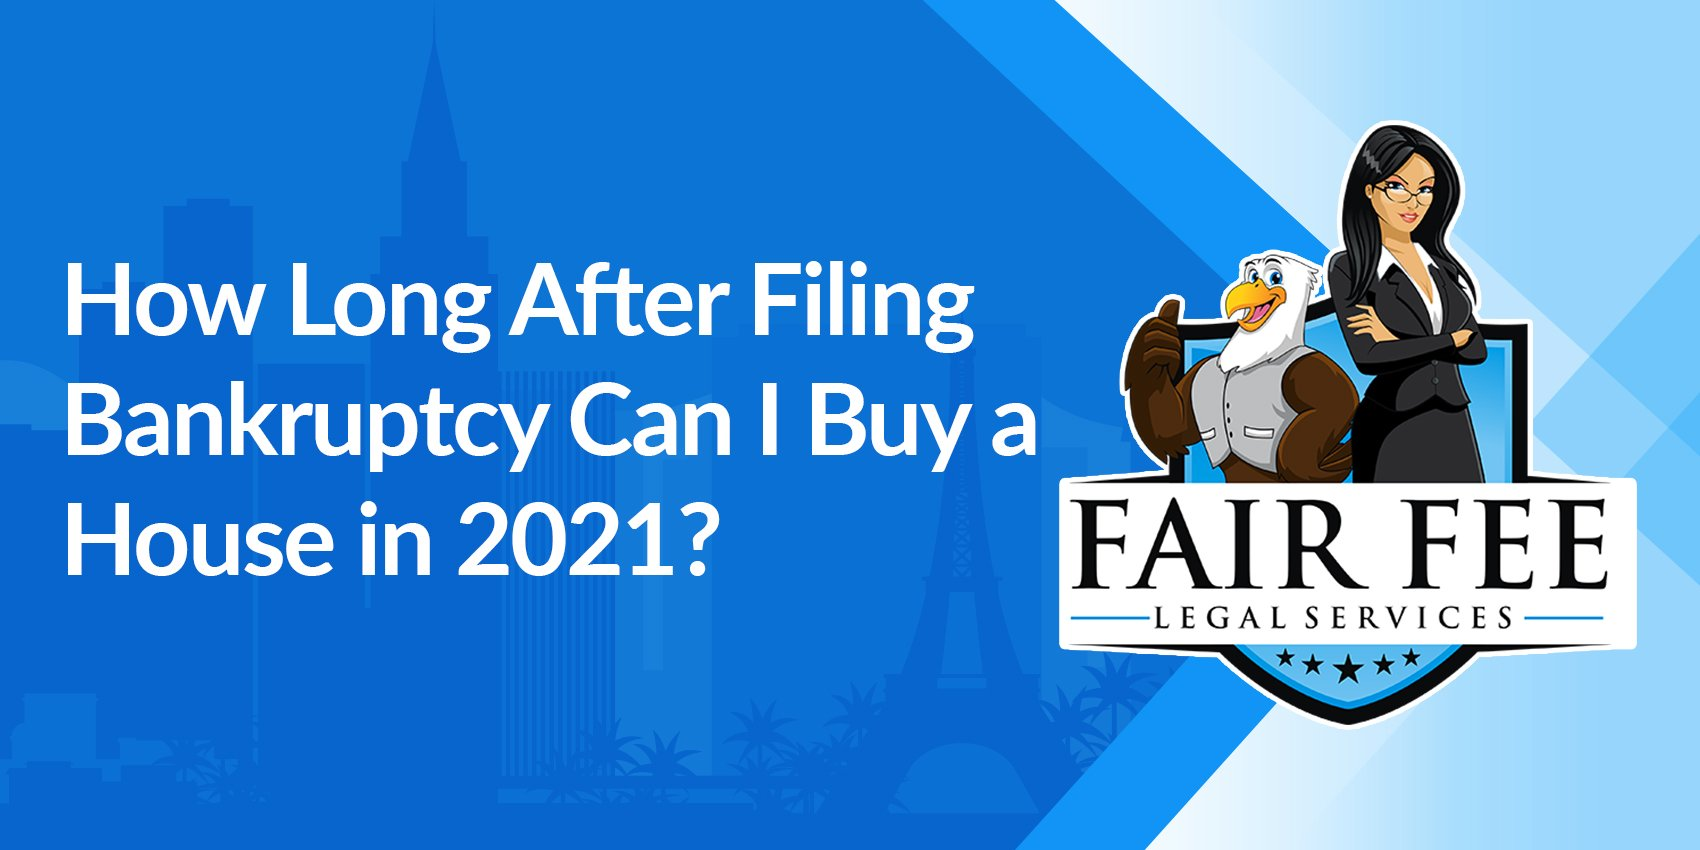 How Long After Filing Bankruptcy Can I Buy a House in 2021 ...